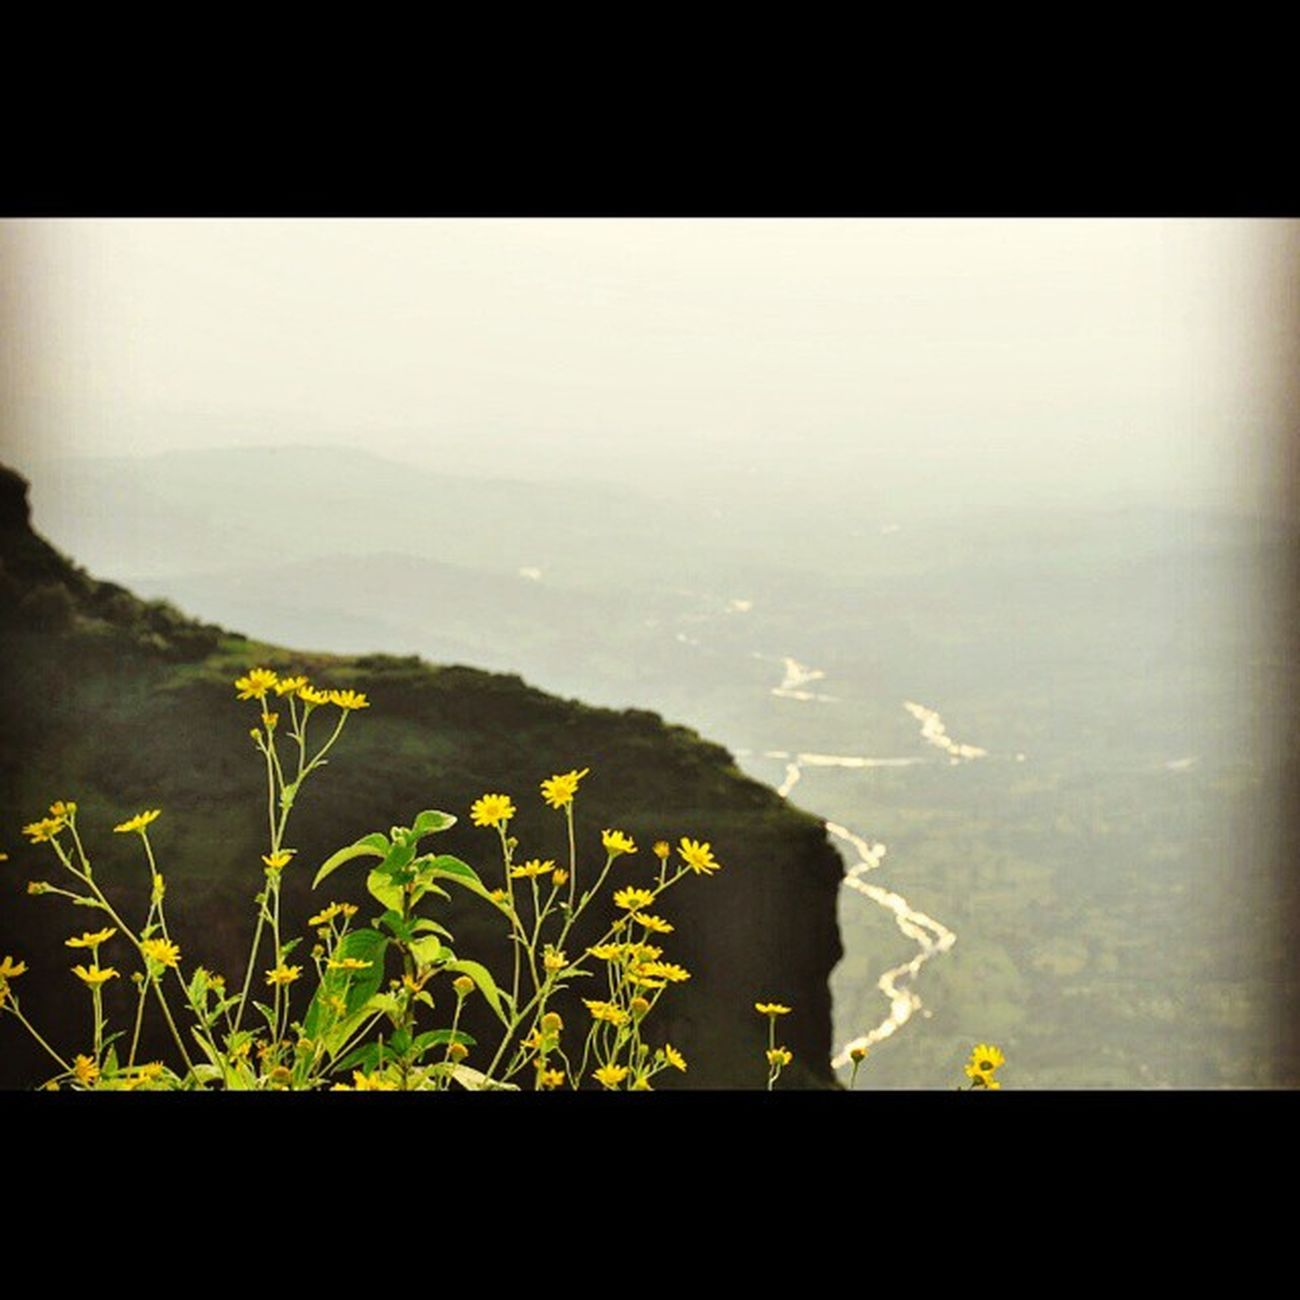 Fragile! Shots from a dream.. Fromadream Instapic Instagram Flowers Valley Mountain Yellow Stream Sunset Instadream Roadtrip Travel Someplace